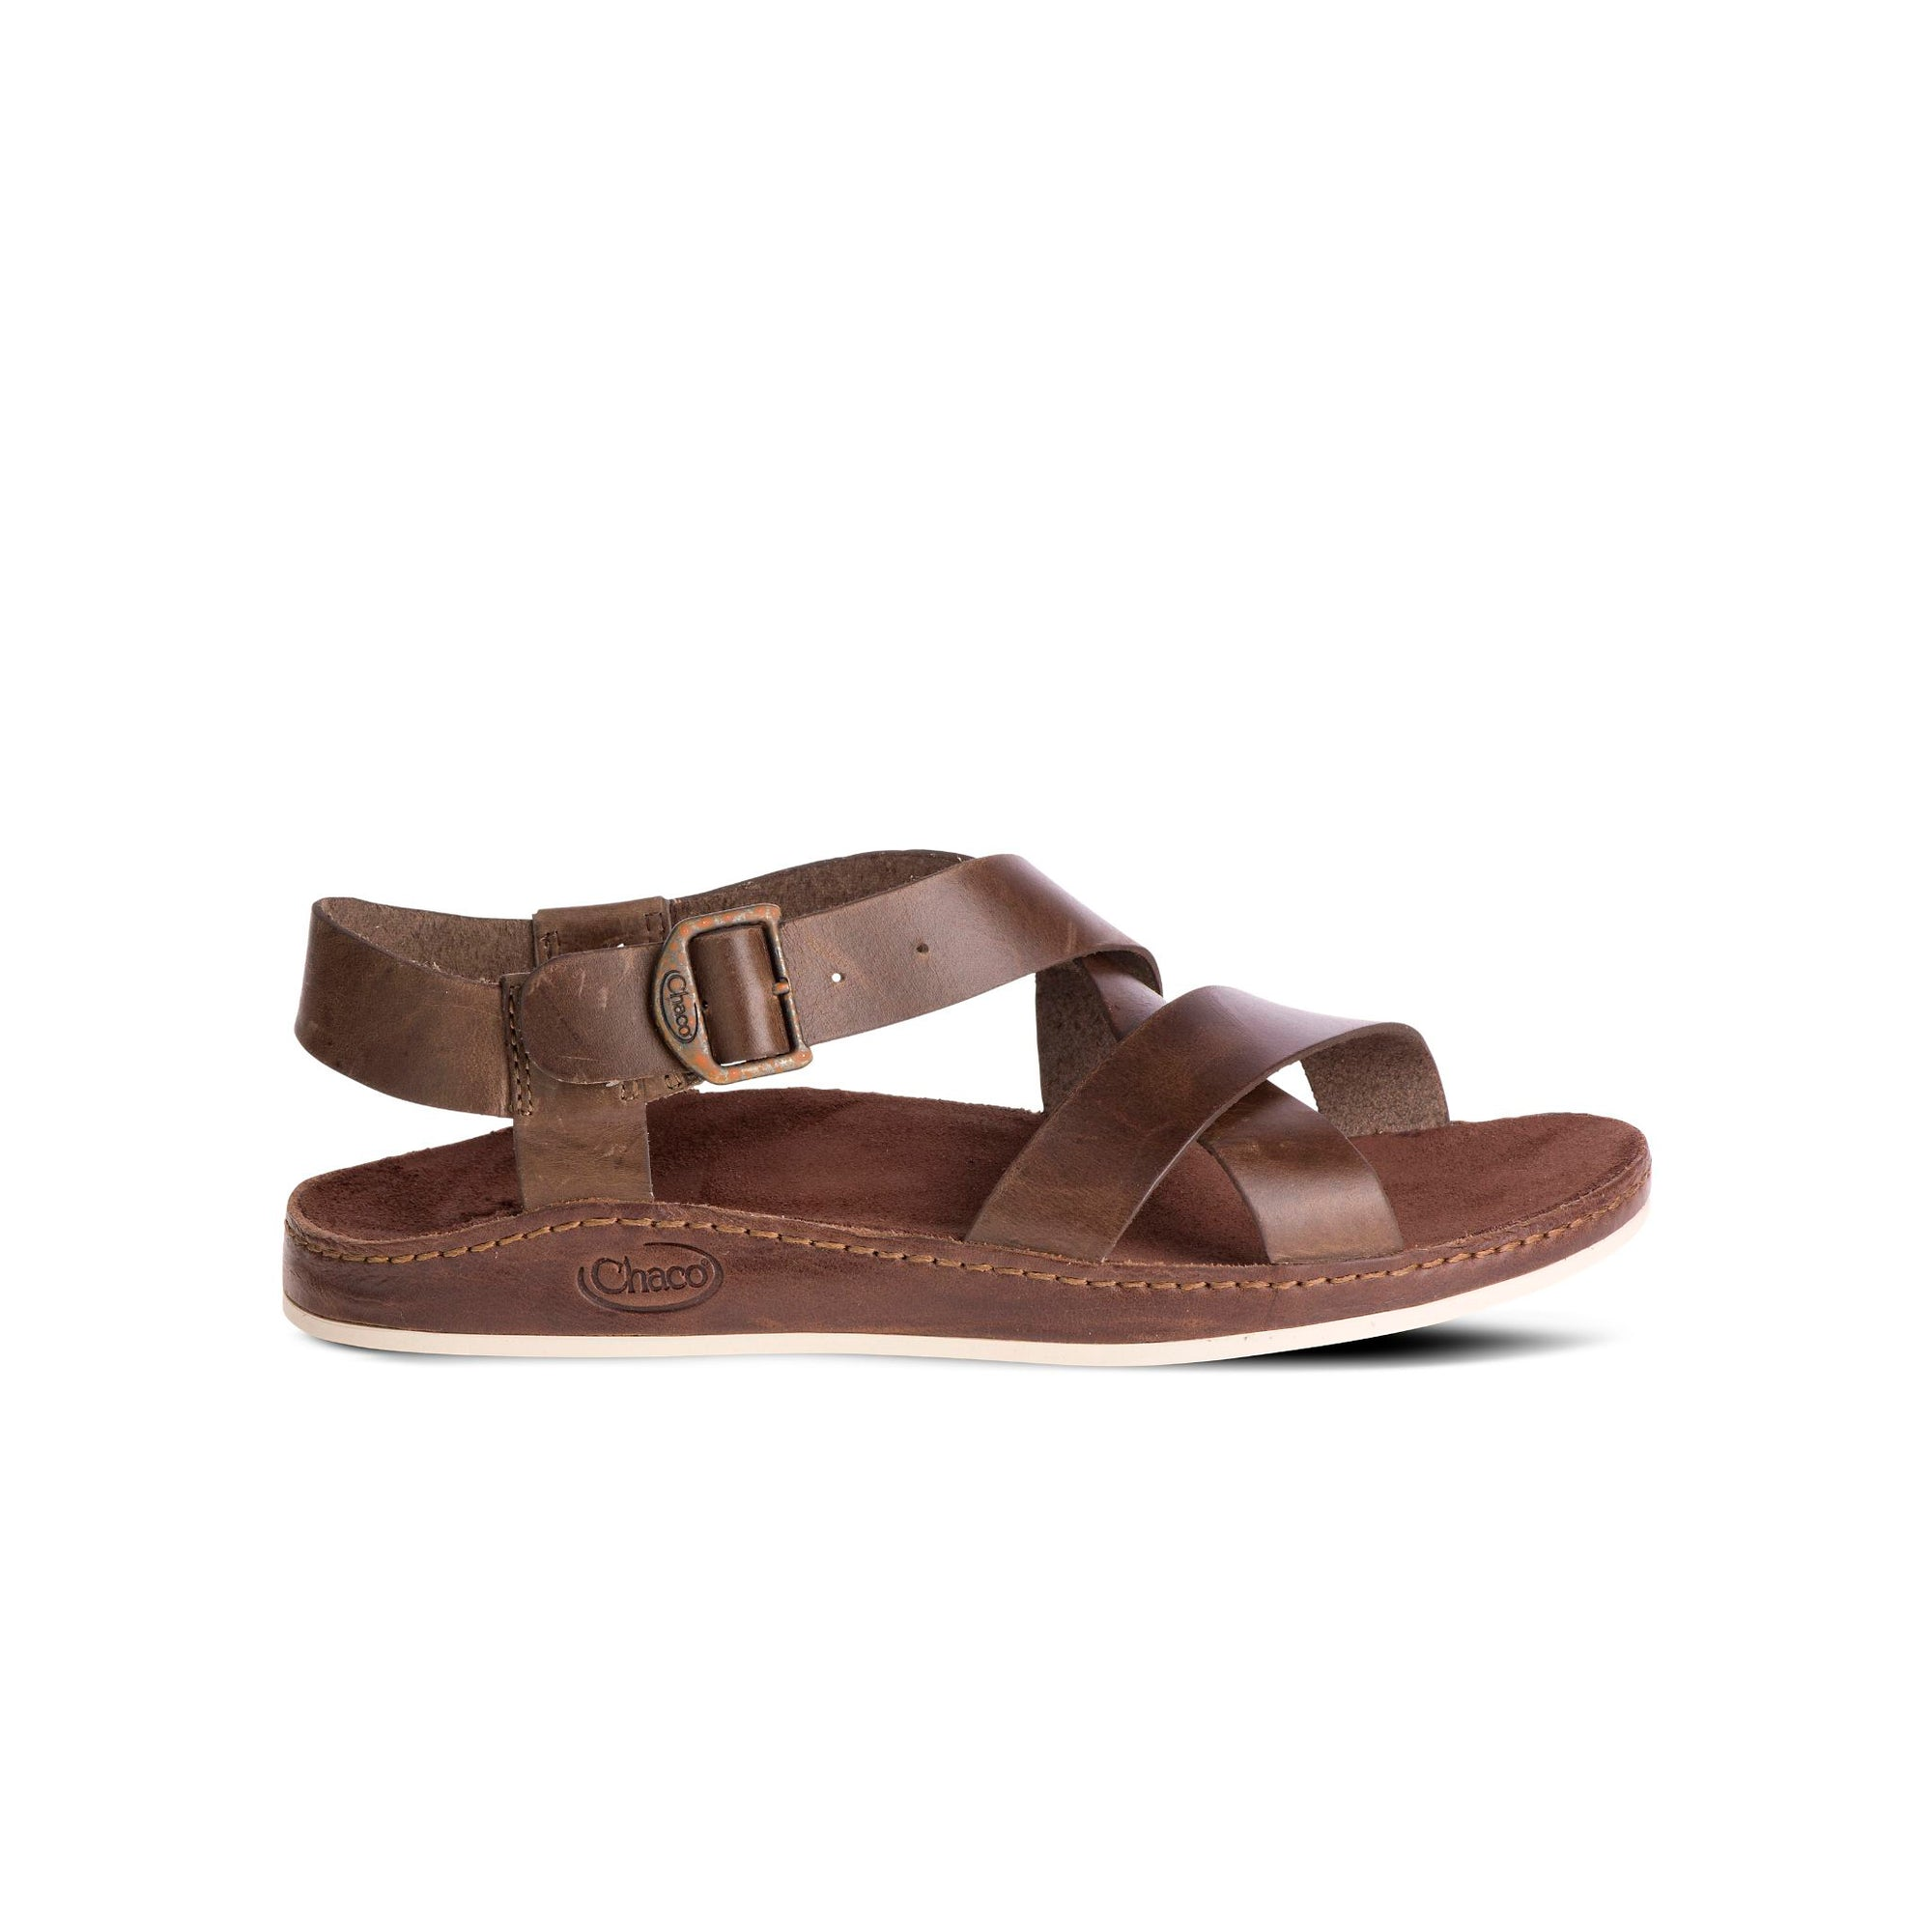 Chaco Womens Wayfarer: Otter - The Union Project